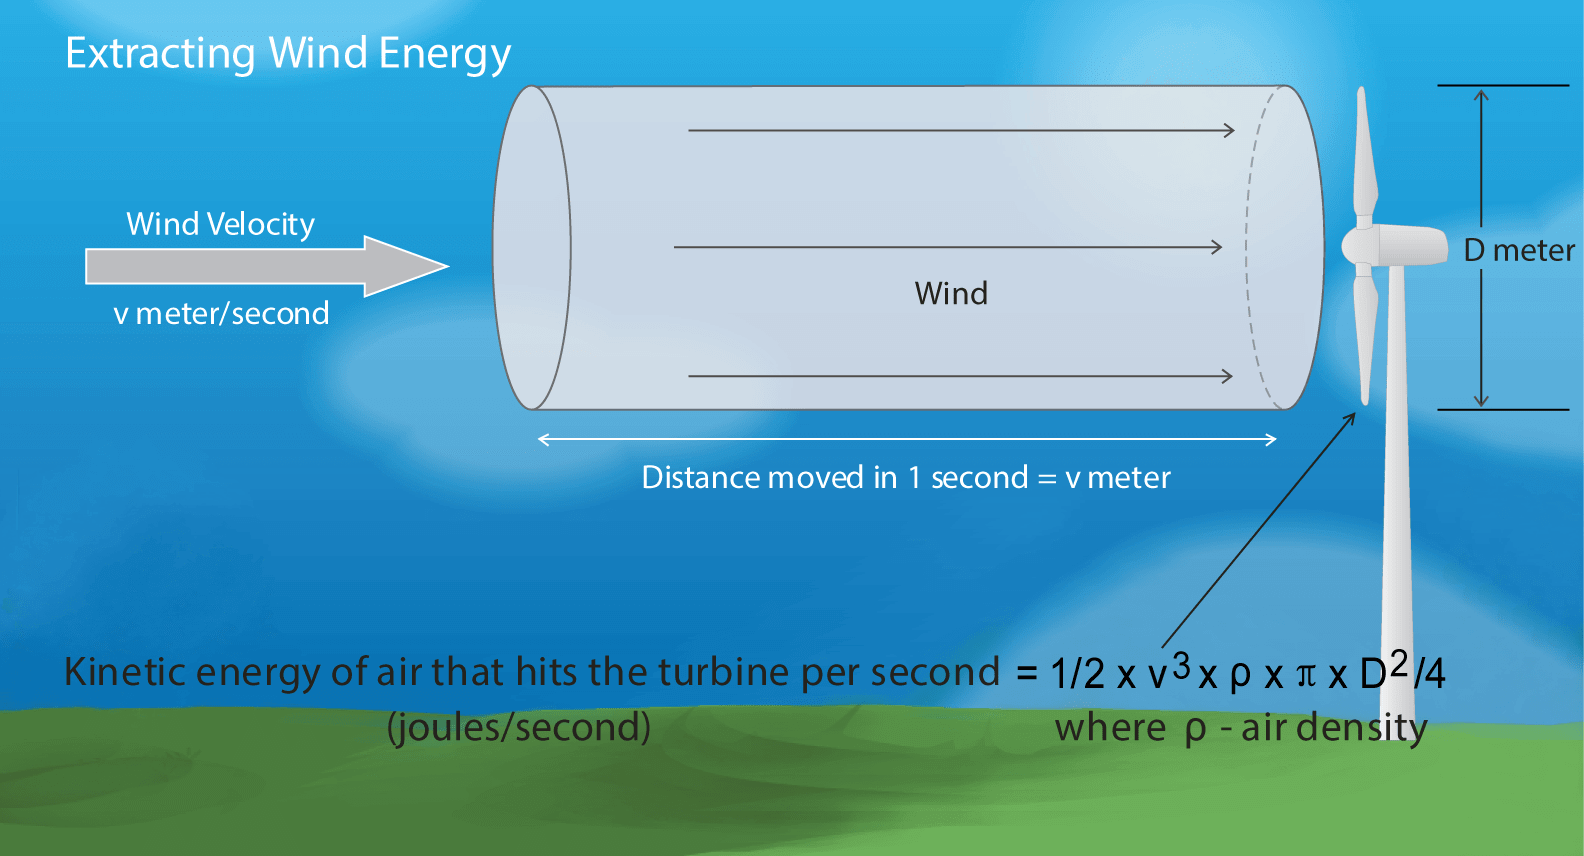 Extracting wind energy-kinetic energy of air.